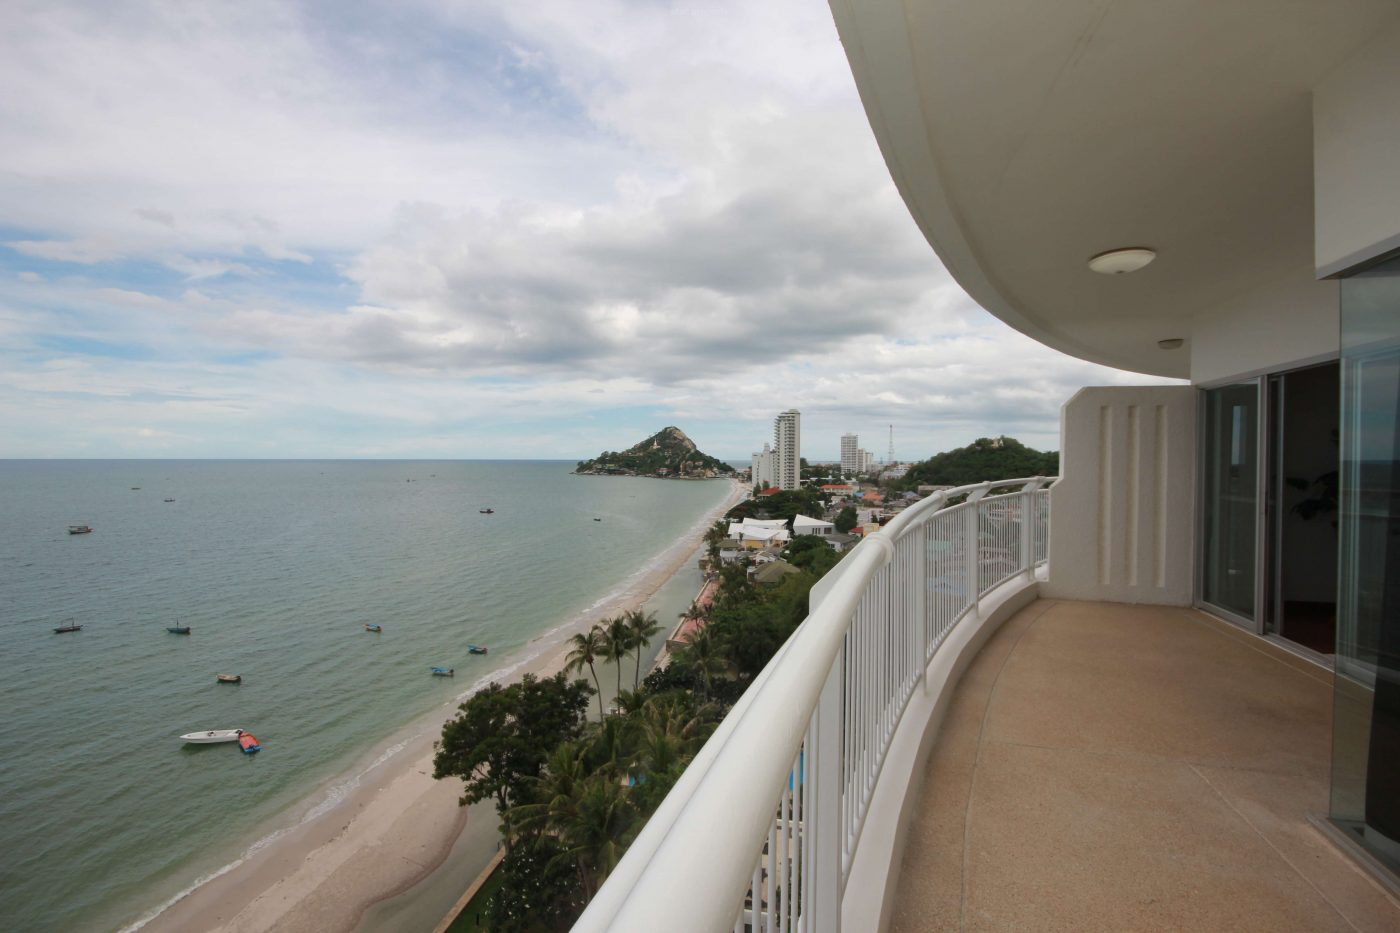 Great Sea View Unit for Sale at 1/42 Nong Kae-Takiap